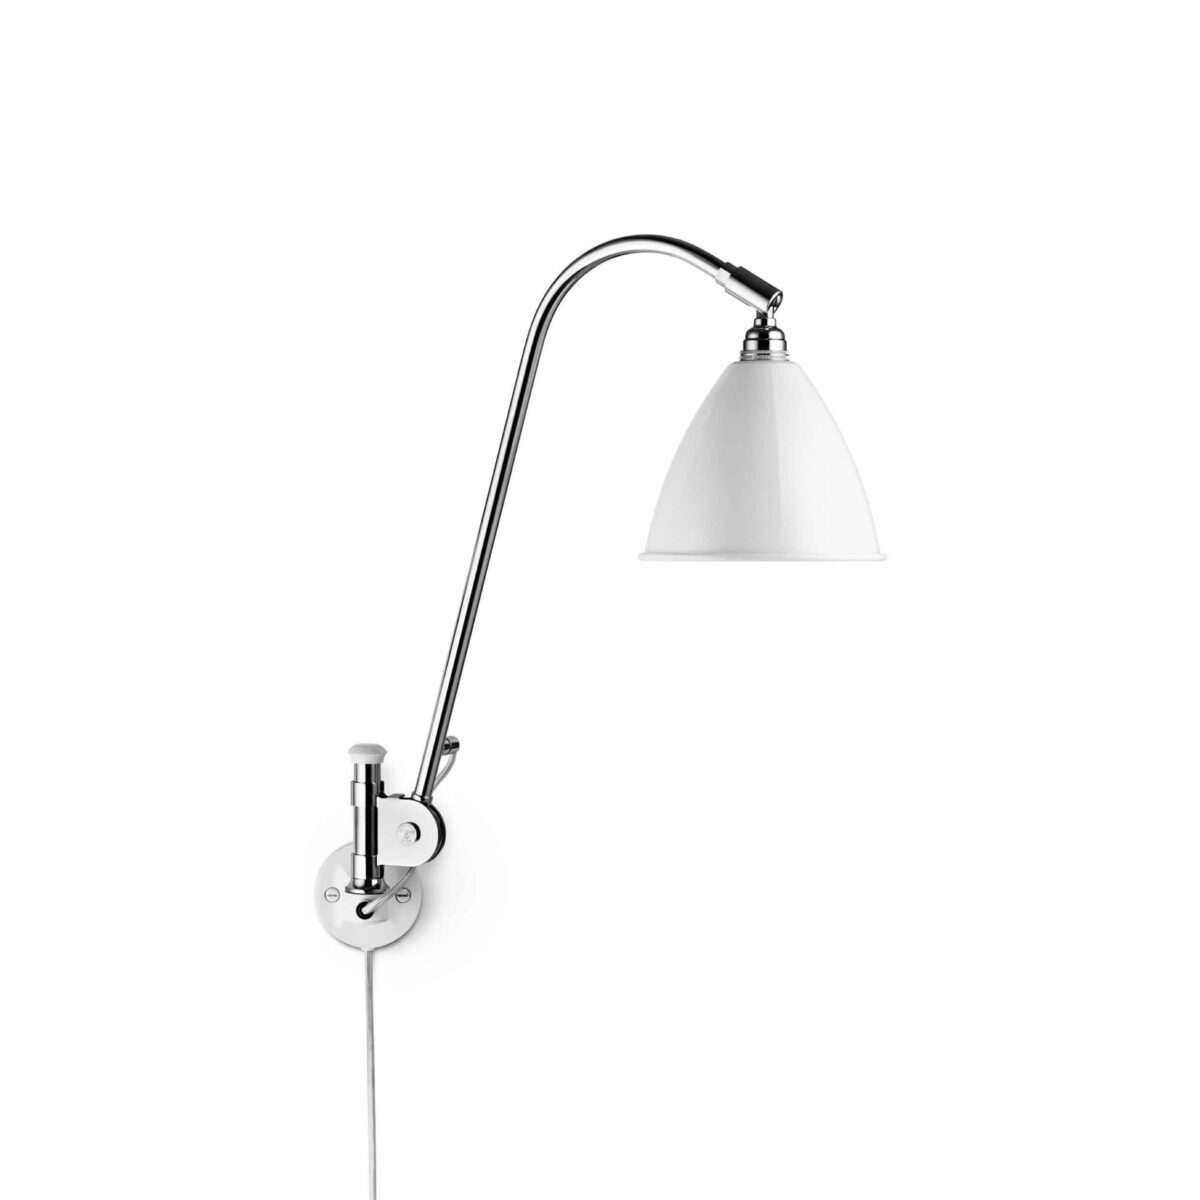 gubi-bestlite-wall-lamp-BL6-matt-white-chrome-01